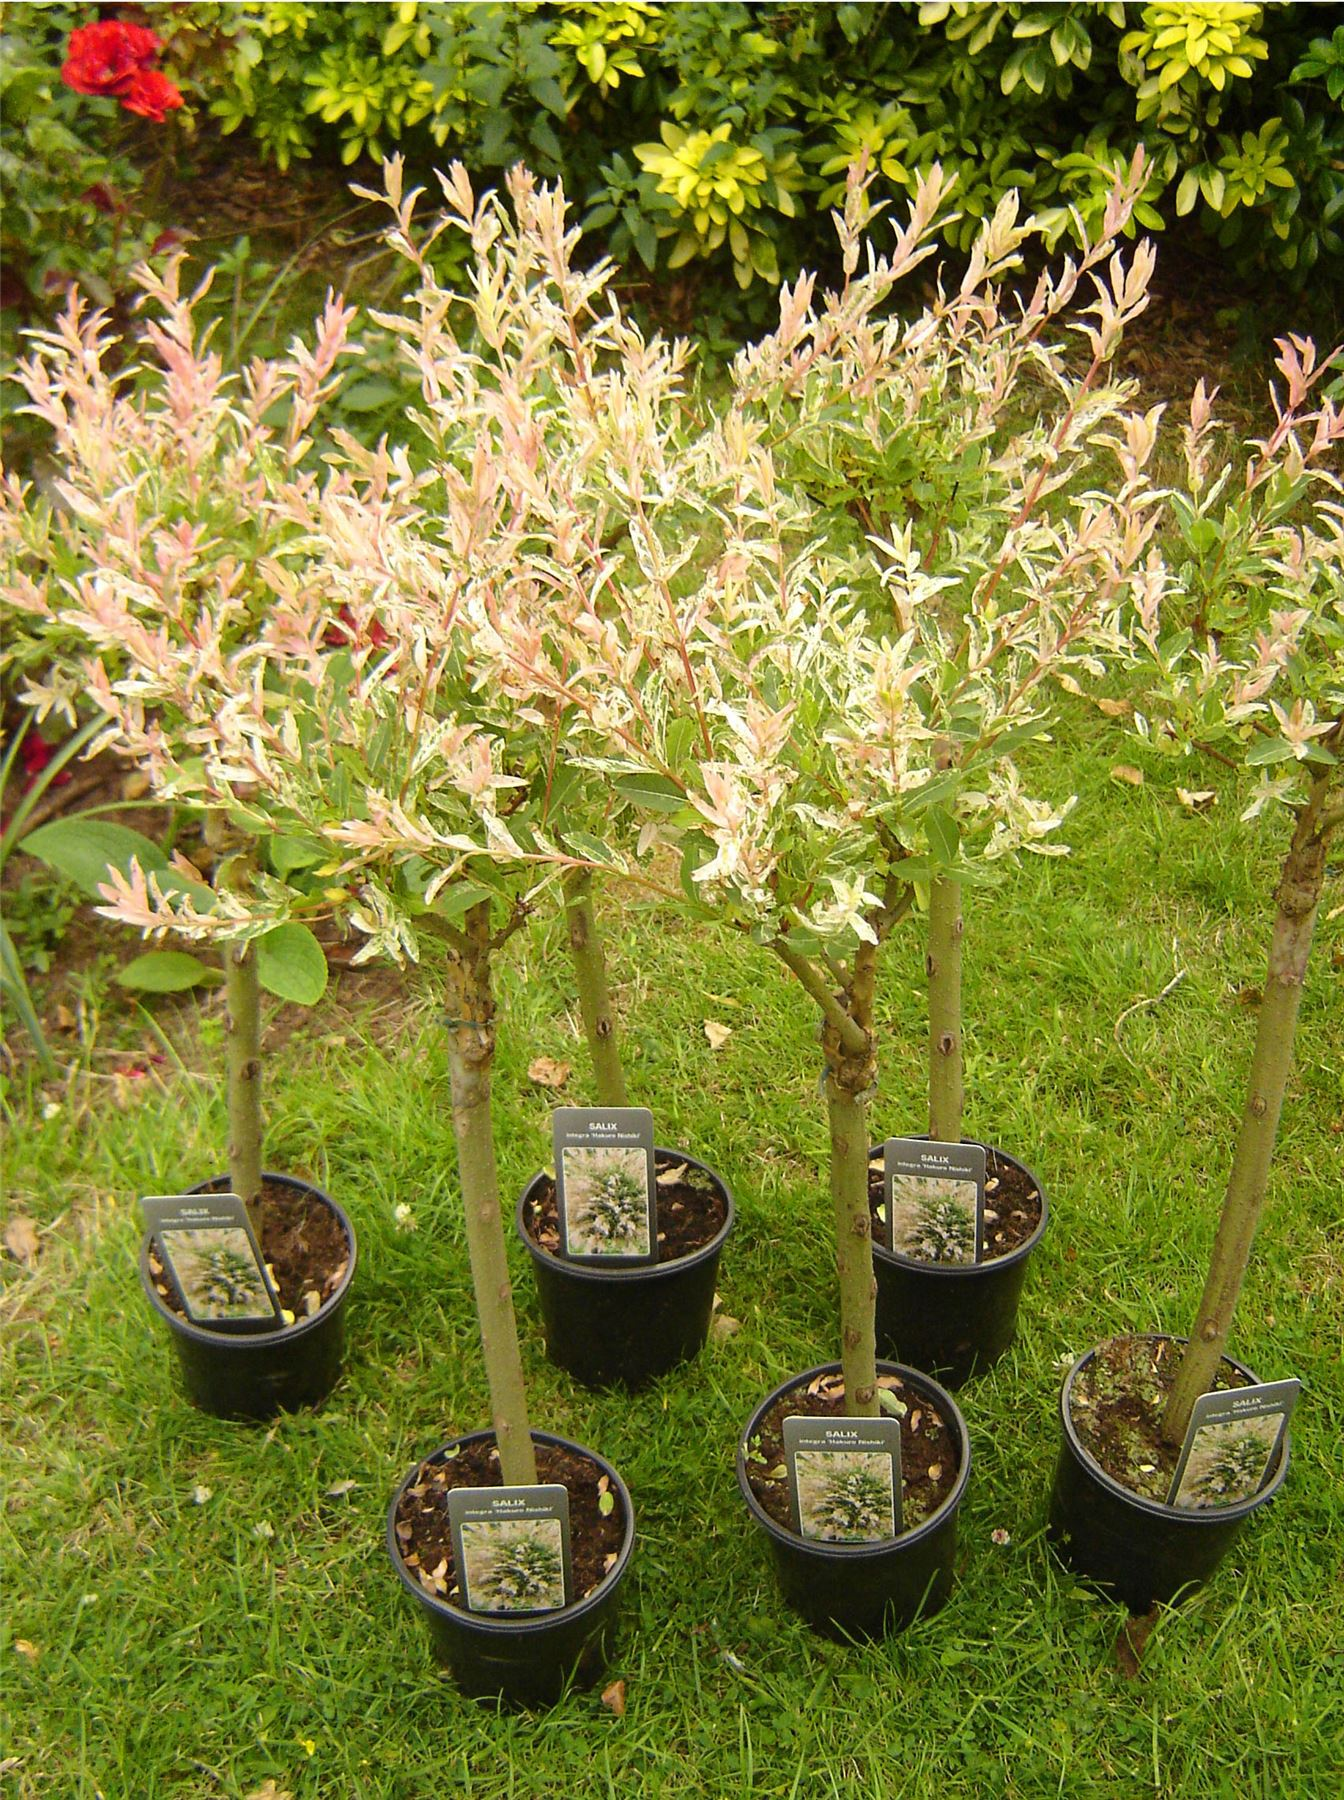 1 large standing flamingo plant salix integra japanese willow nishiki tree pot ebay. Black Bedroom Furniture Sets. Home Design Ideas